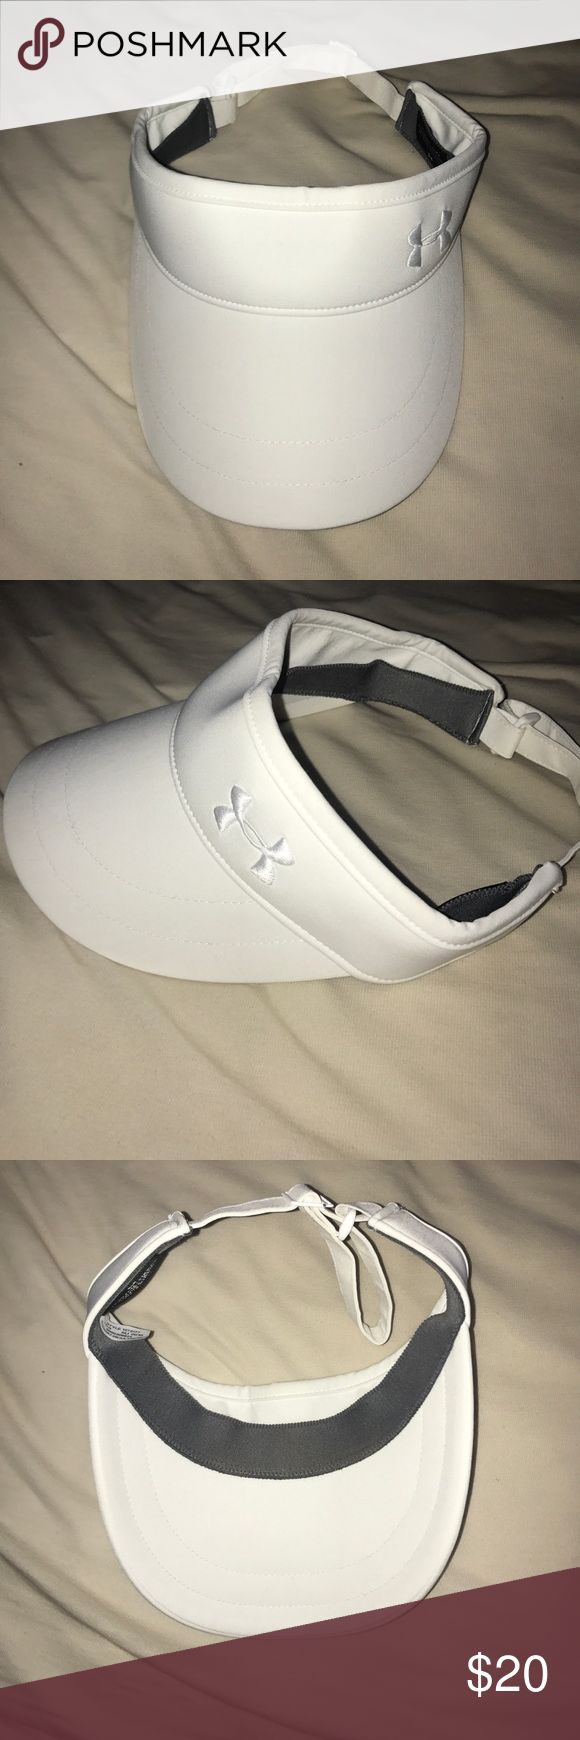 Under armour visor White under armour women's visor, worn once, slight make up mark on the inside from forehead but no other stains or marks, brand new Under Armour Accessories Hats